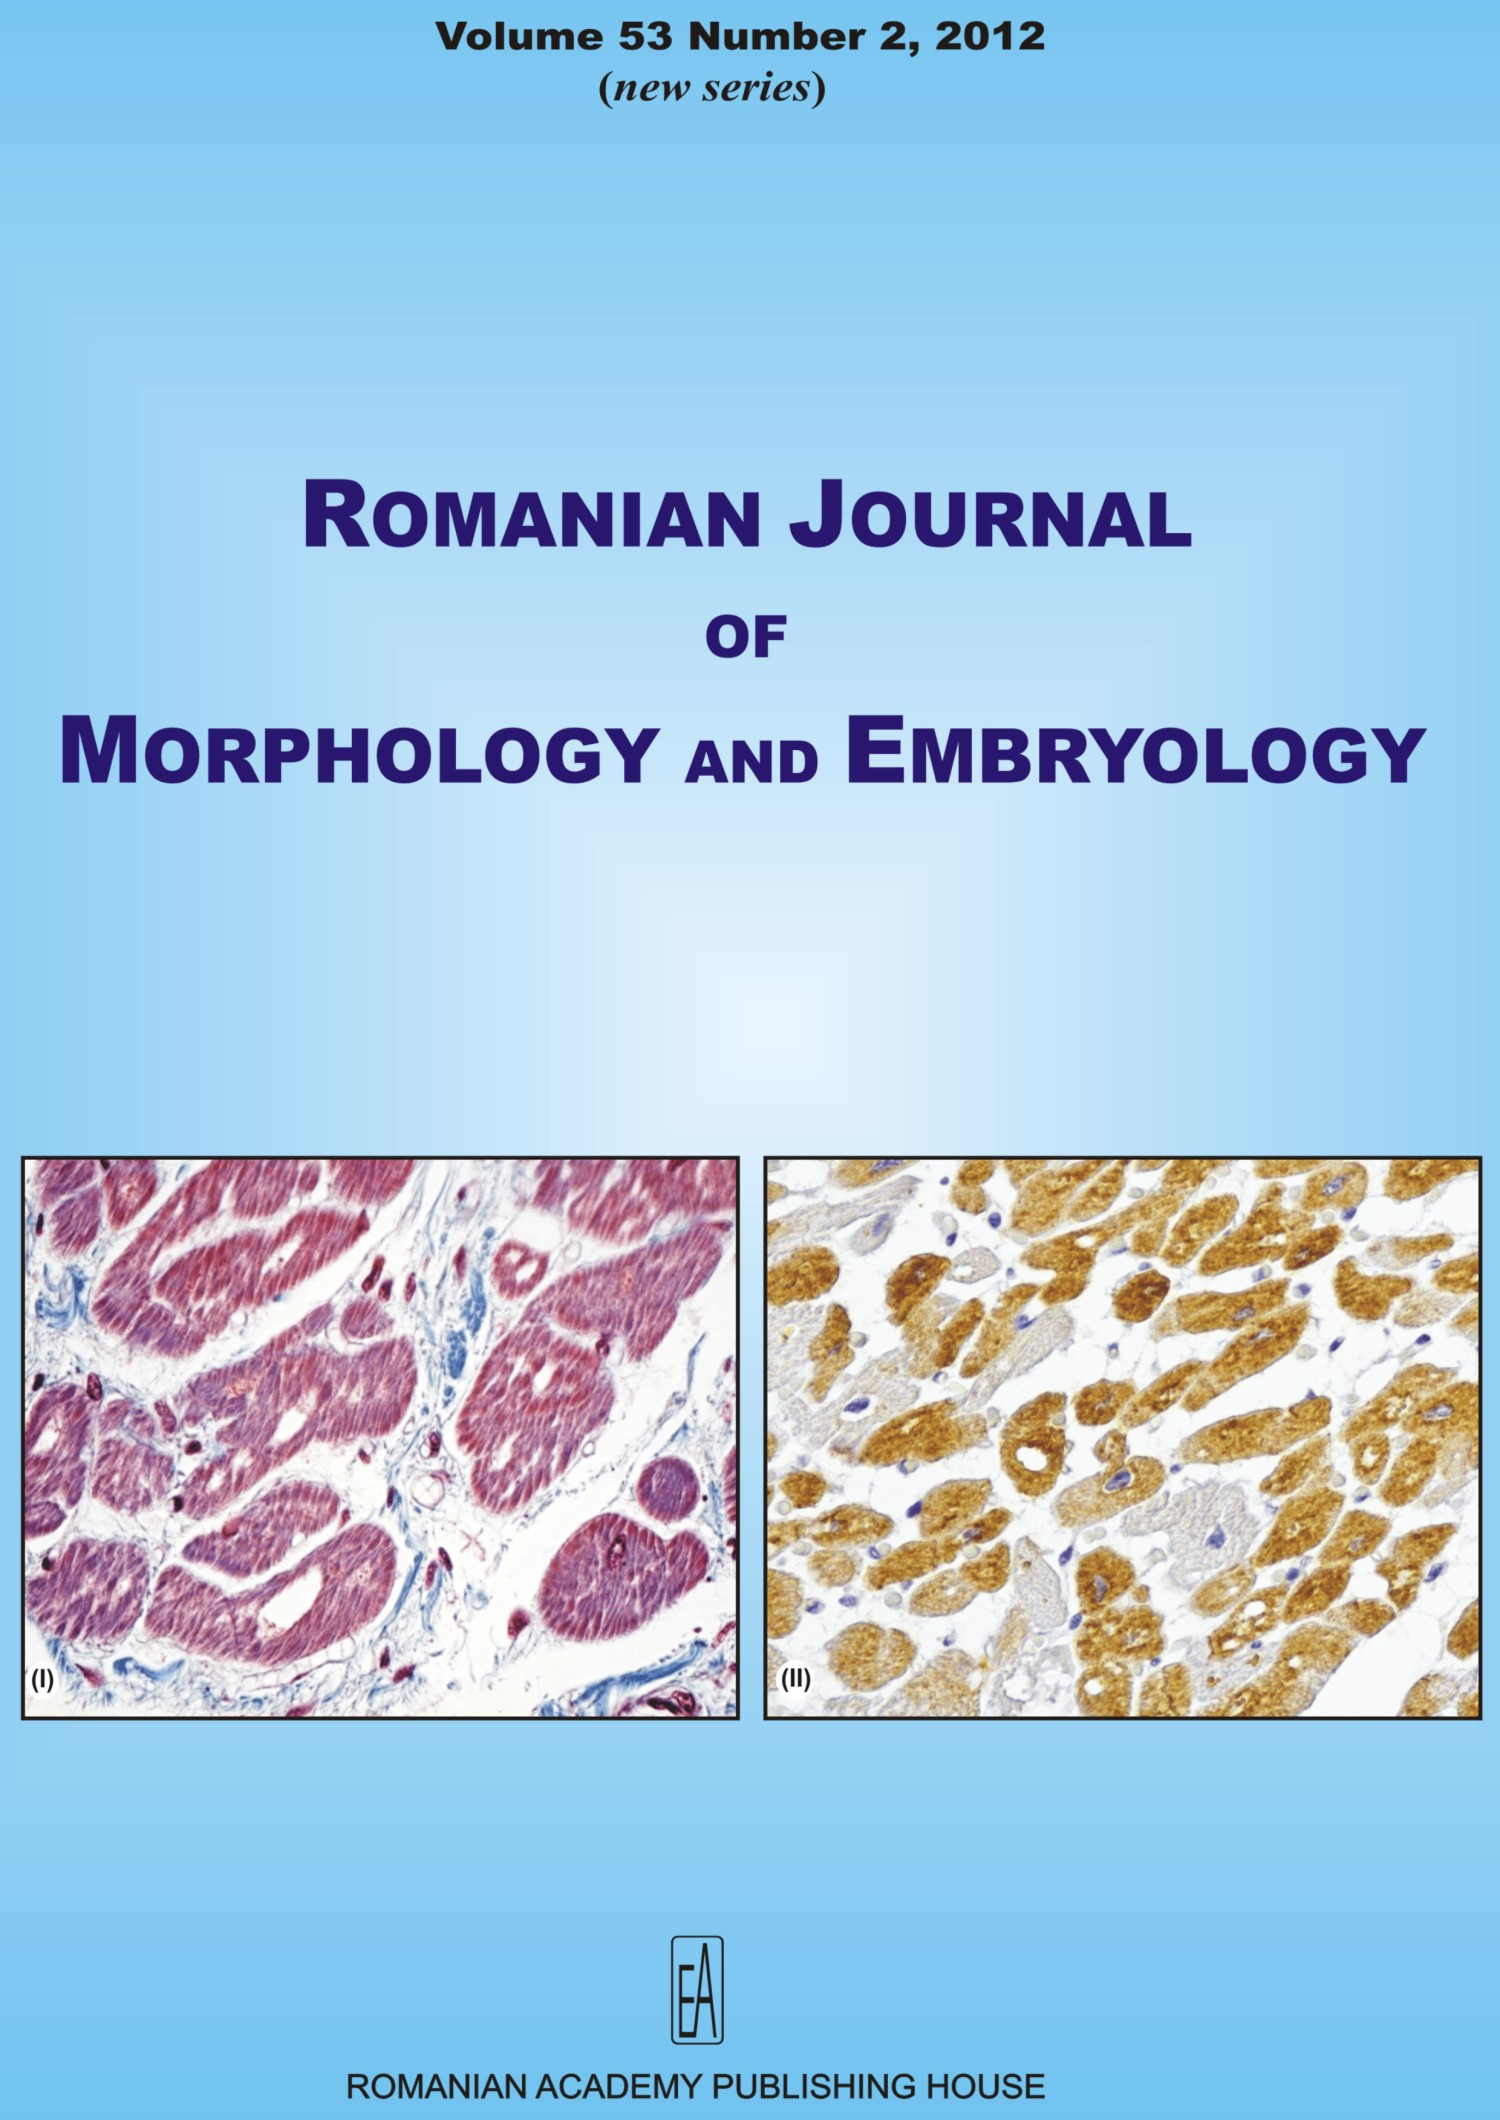 Romanian Journal of Morphology and Embryology, vol. 53 no. 2, 2012